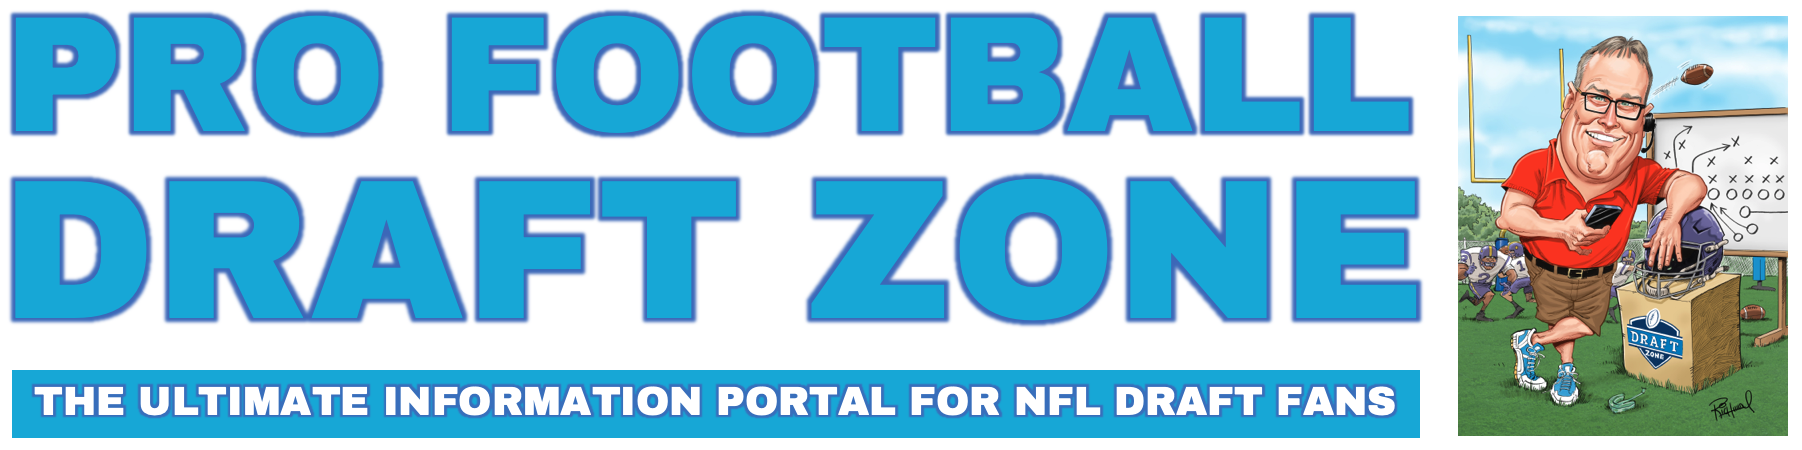 PRO FOOTBALL DRAFT ZONE